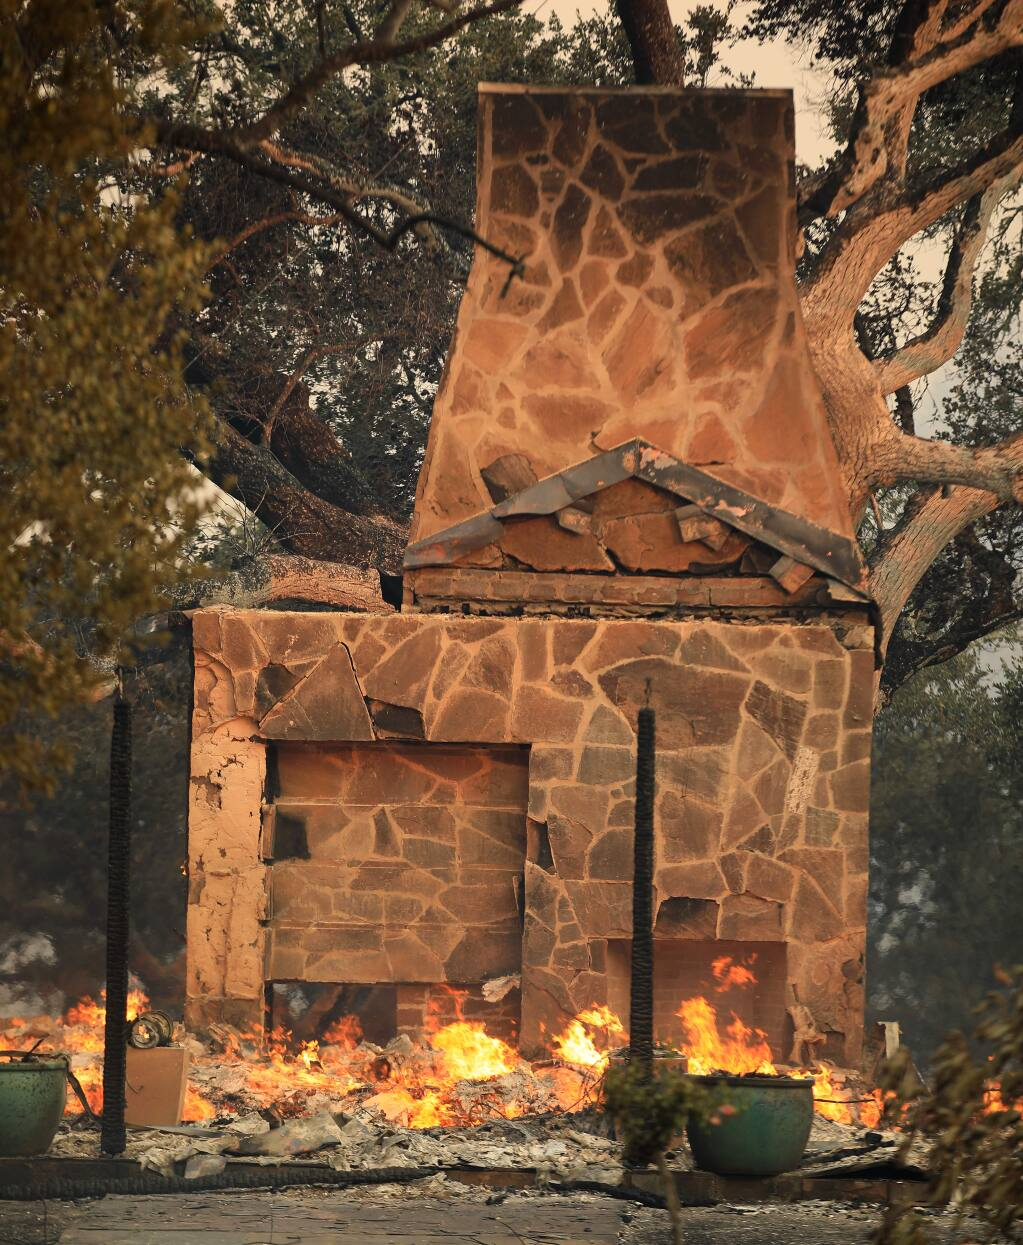 Several buildings were destroyed in the Jackson Family compound by the Kincade fire, Thursday, Oct. 24, 2019 near Geyserville. (Kent Porter / The Press Democrat)